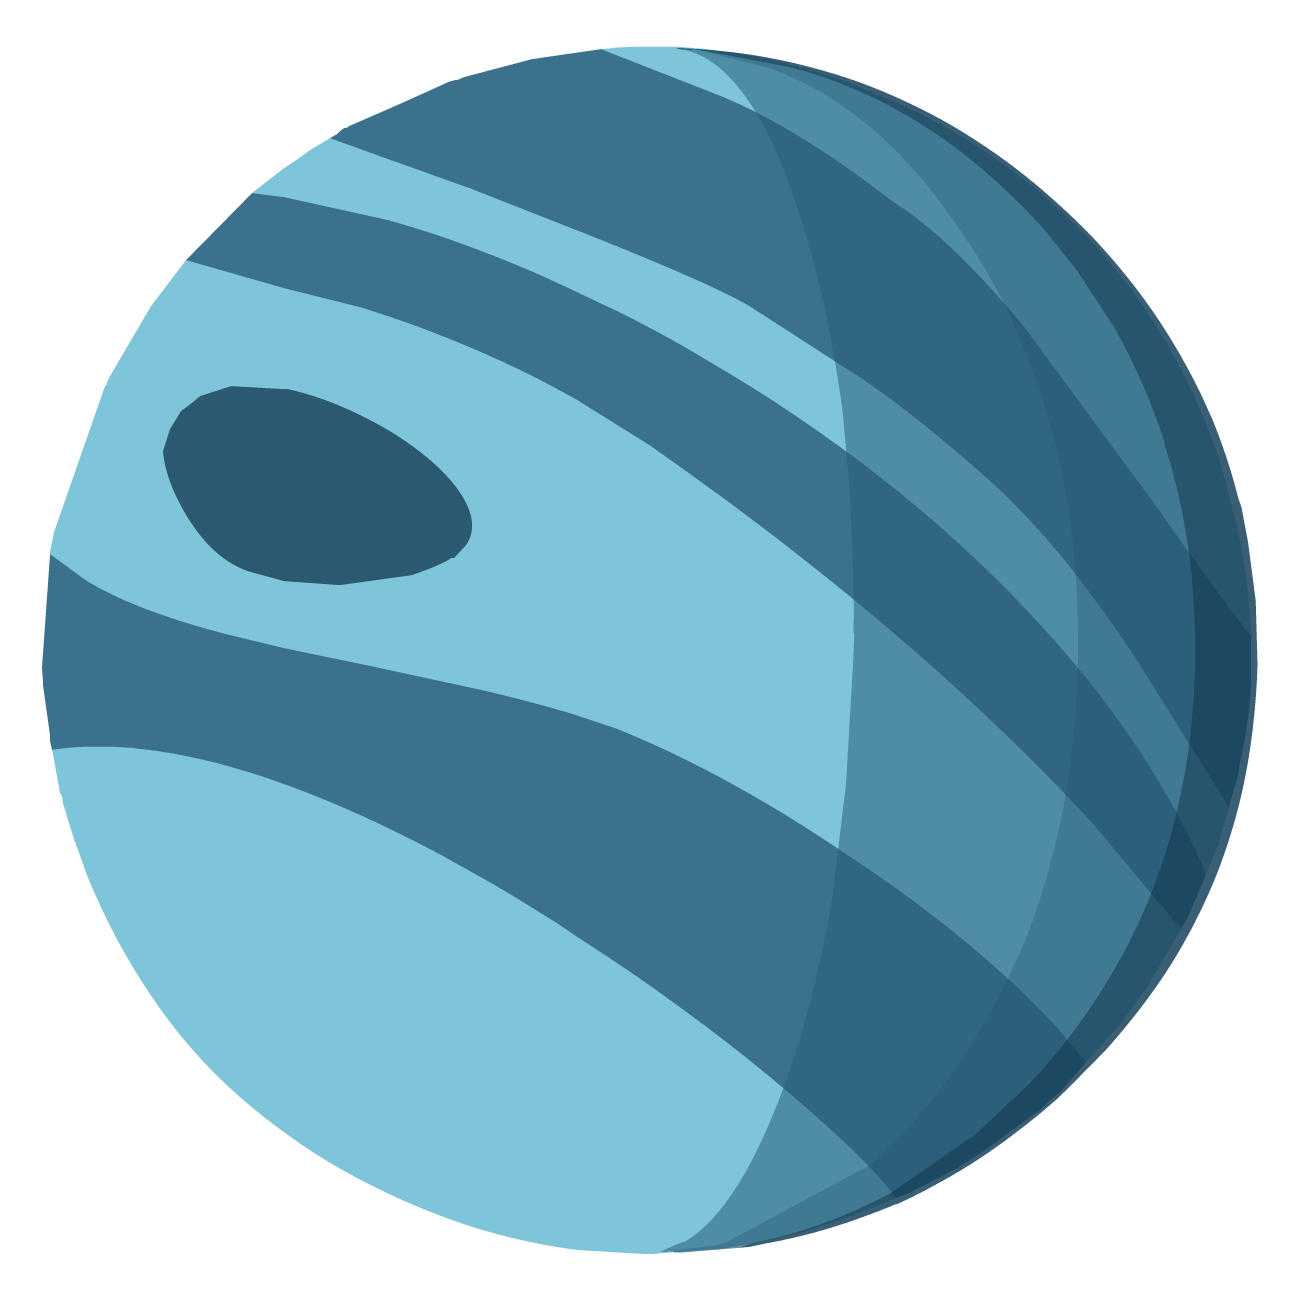 1300x1300 Marble Clipart Neptune Planet